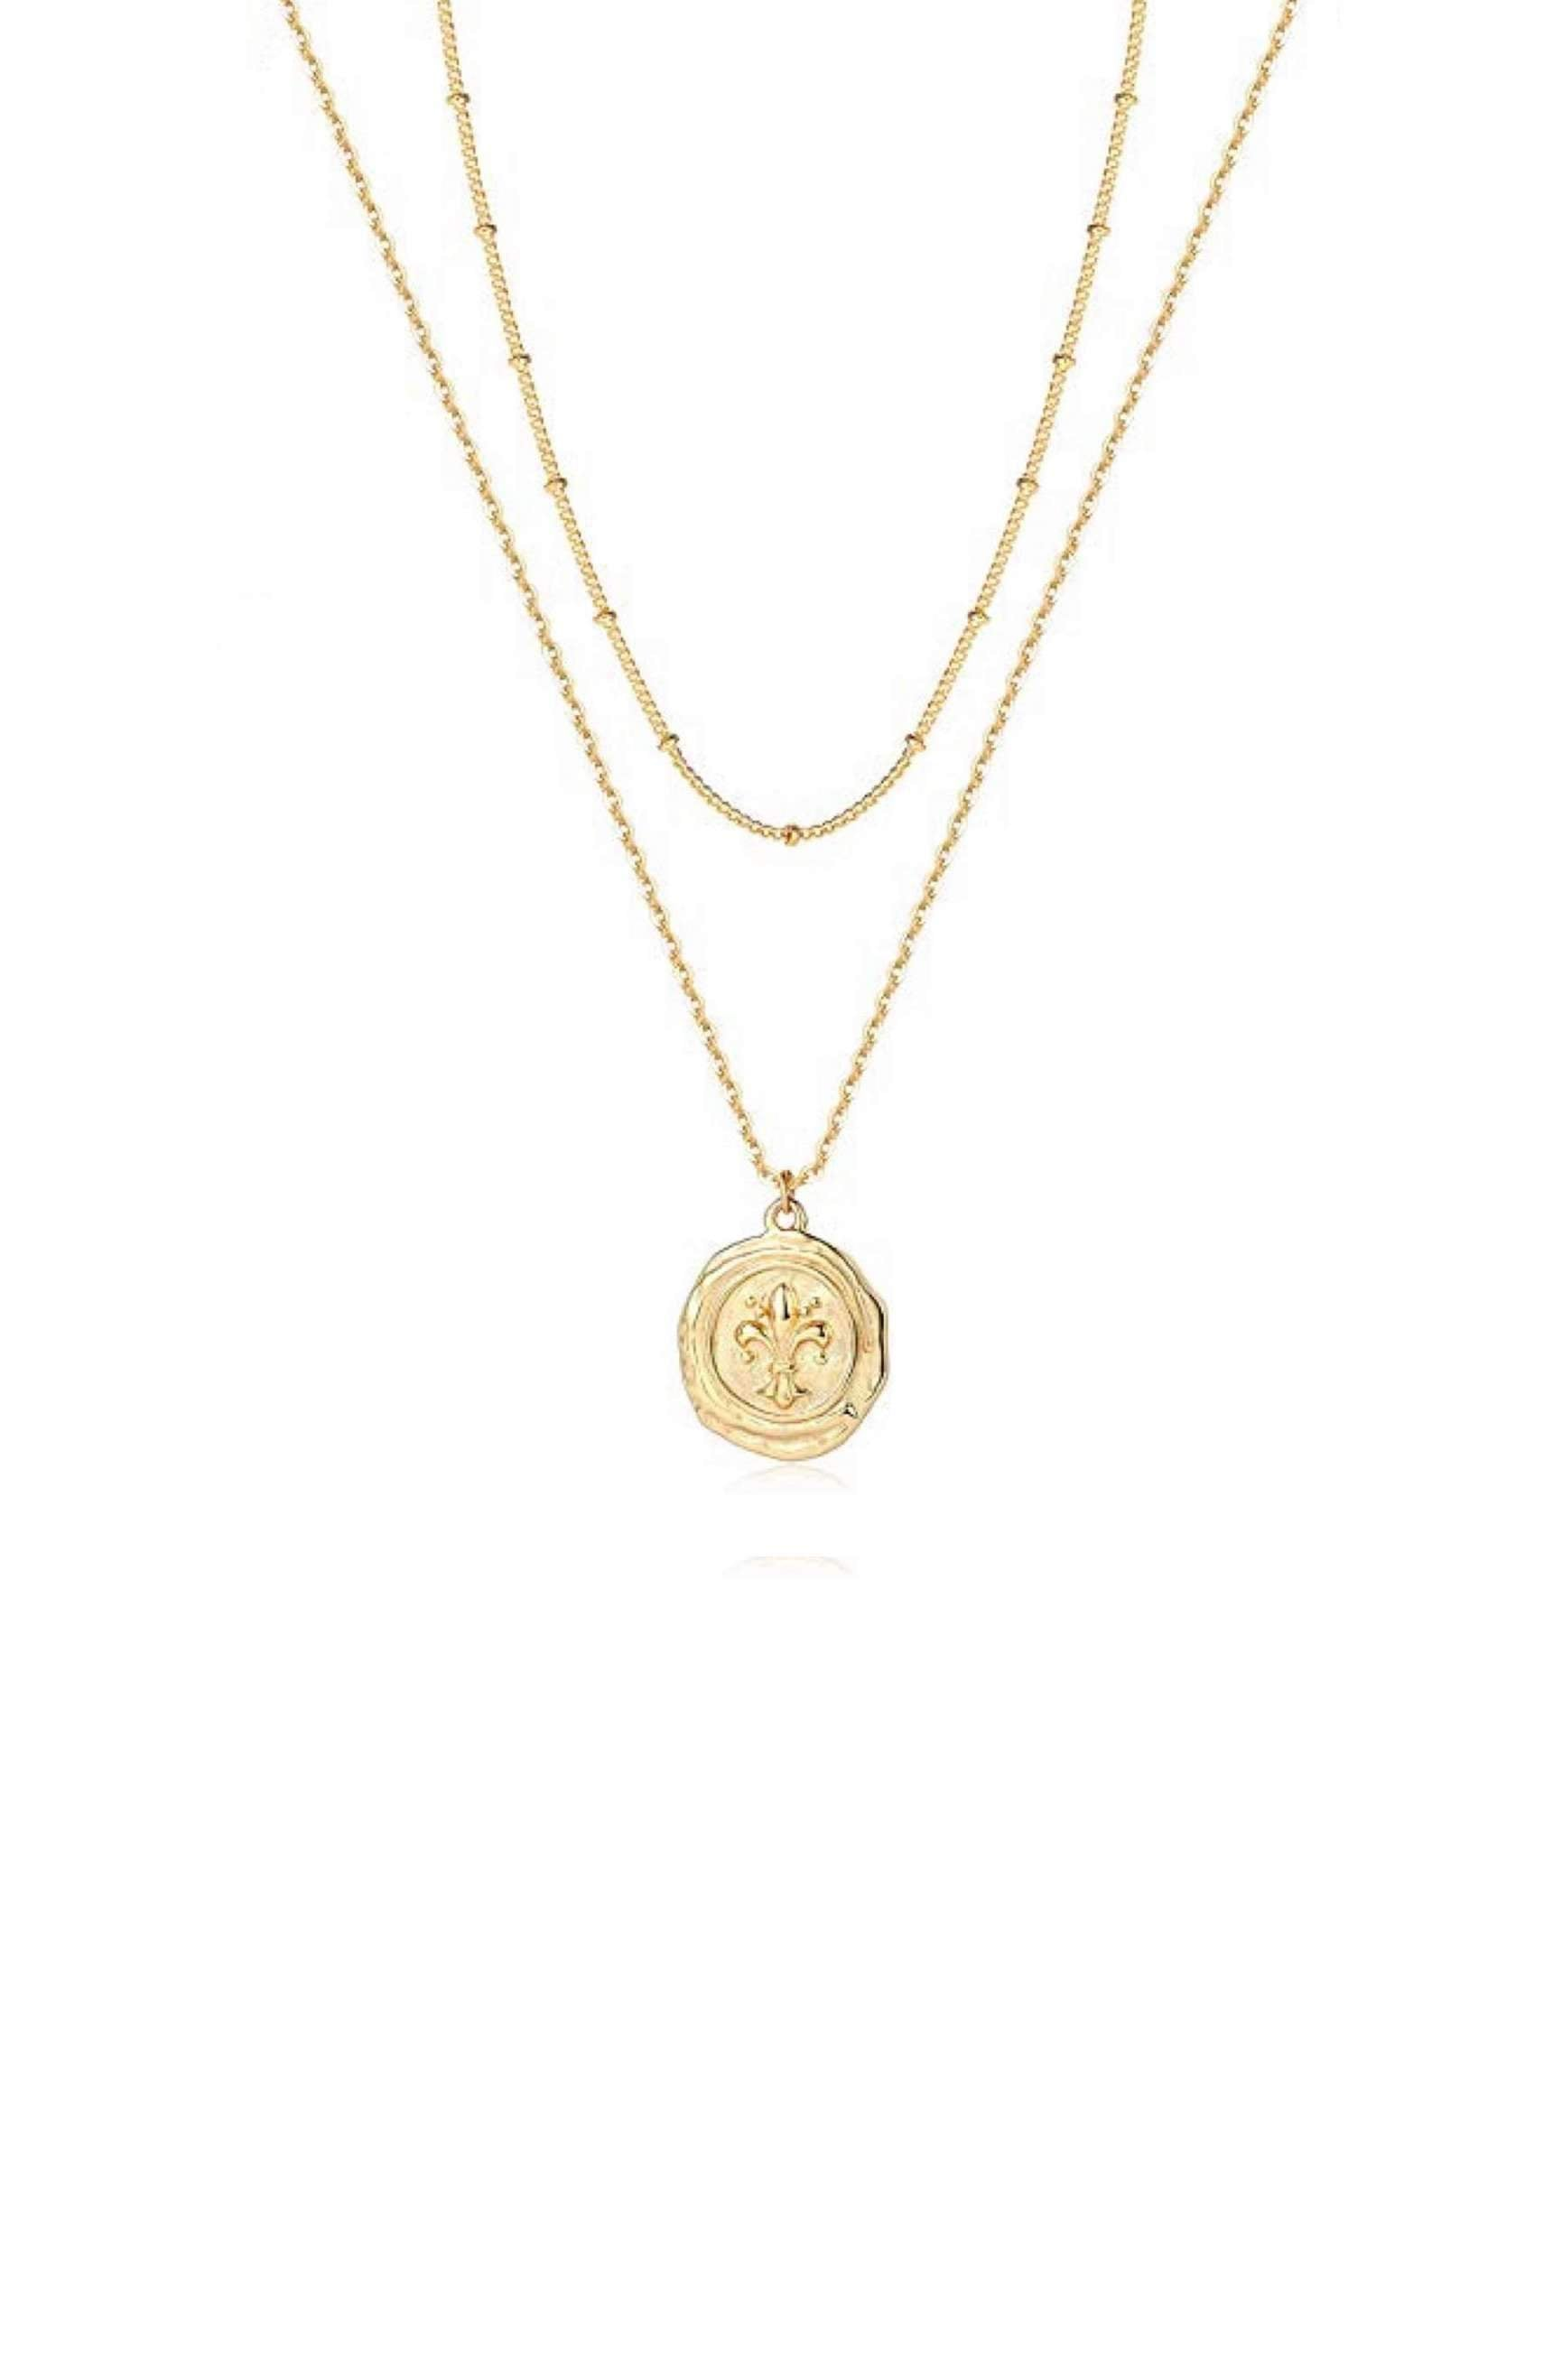 18K Gold Double Layer Motif Necklace